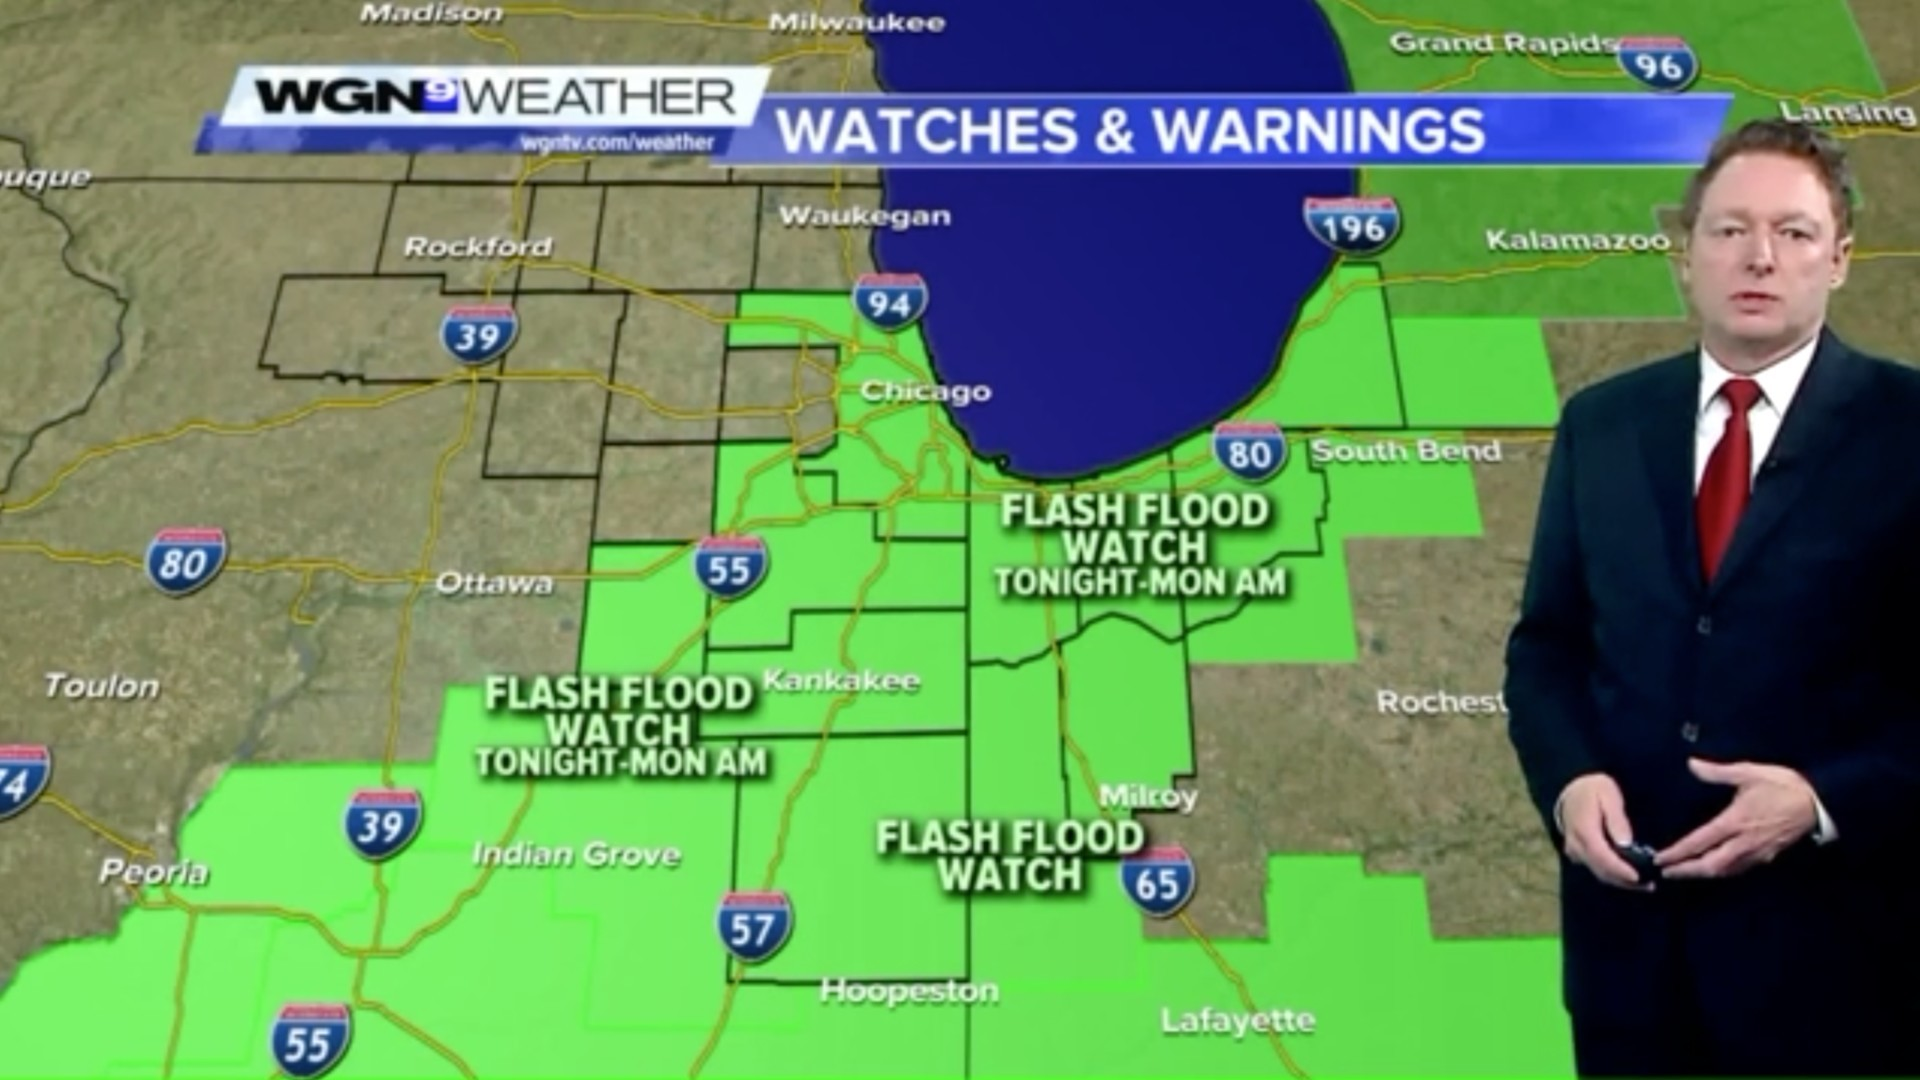 channel 9 weather forecast chicago